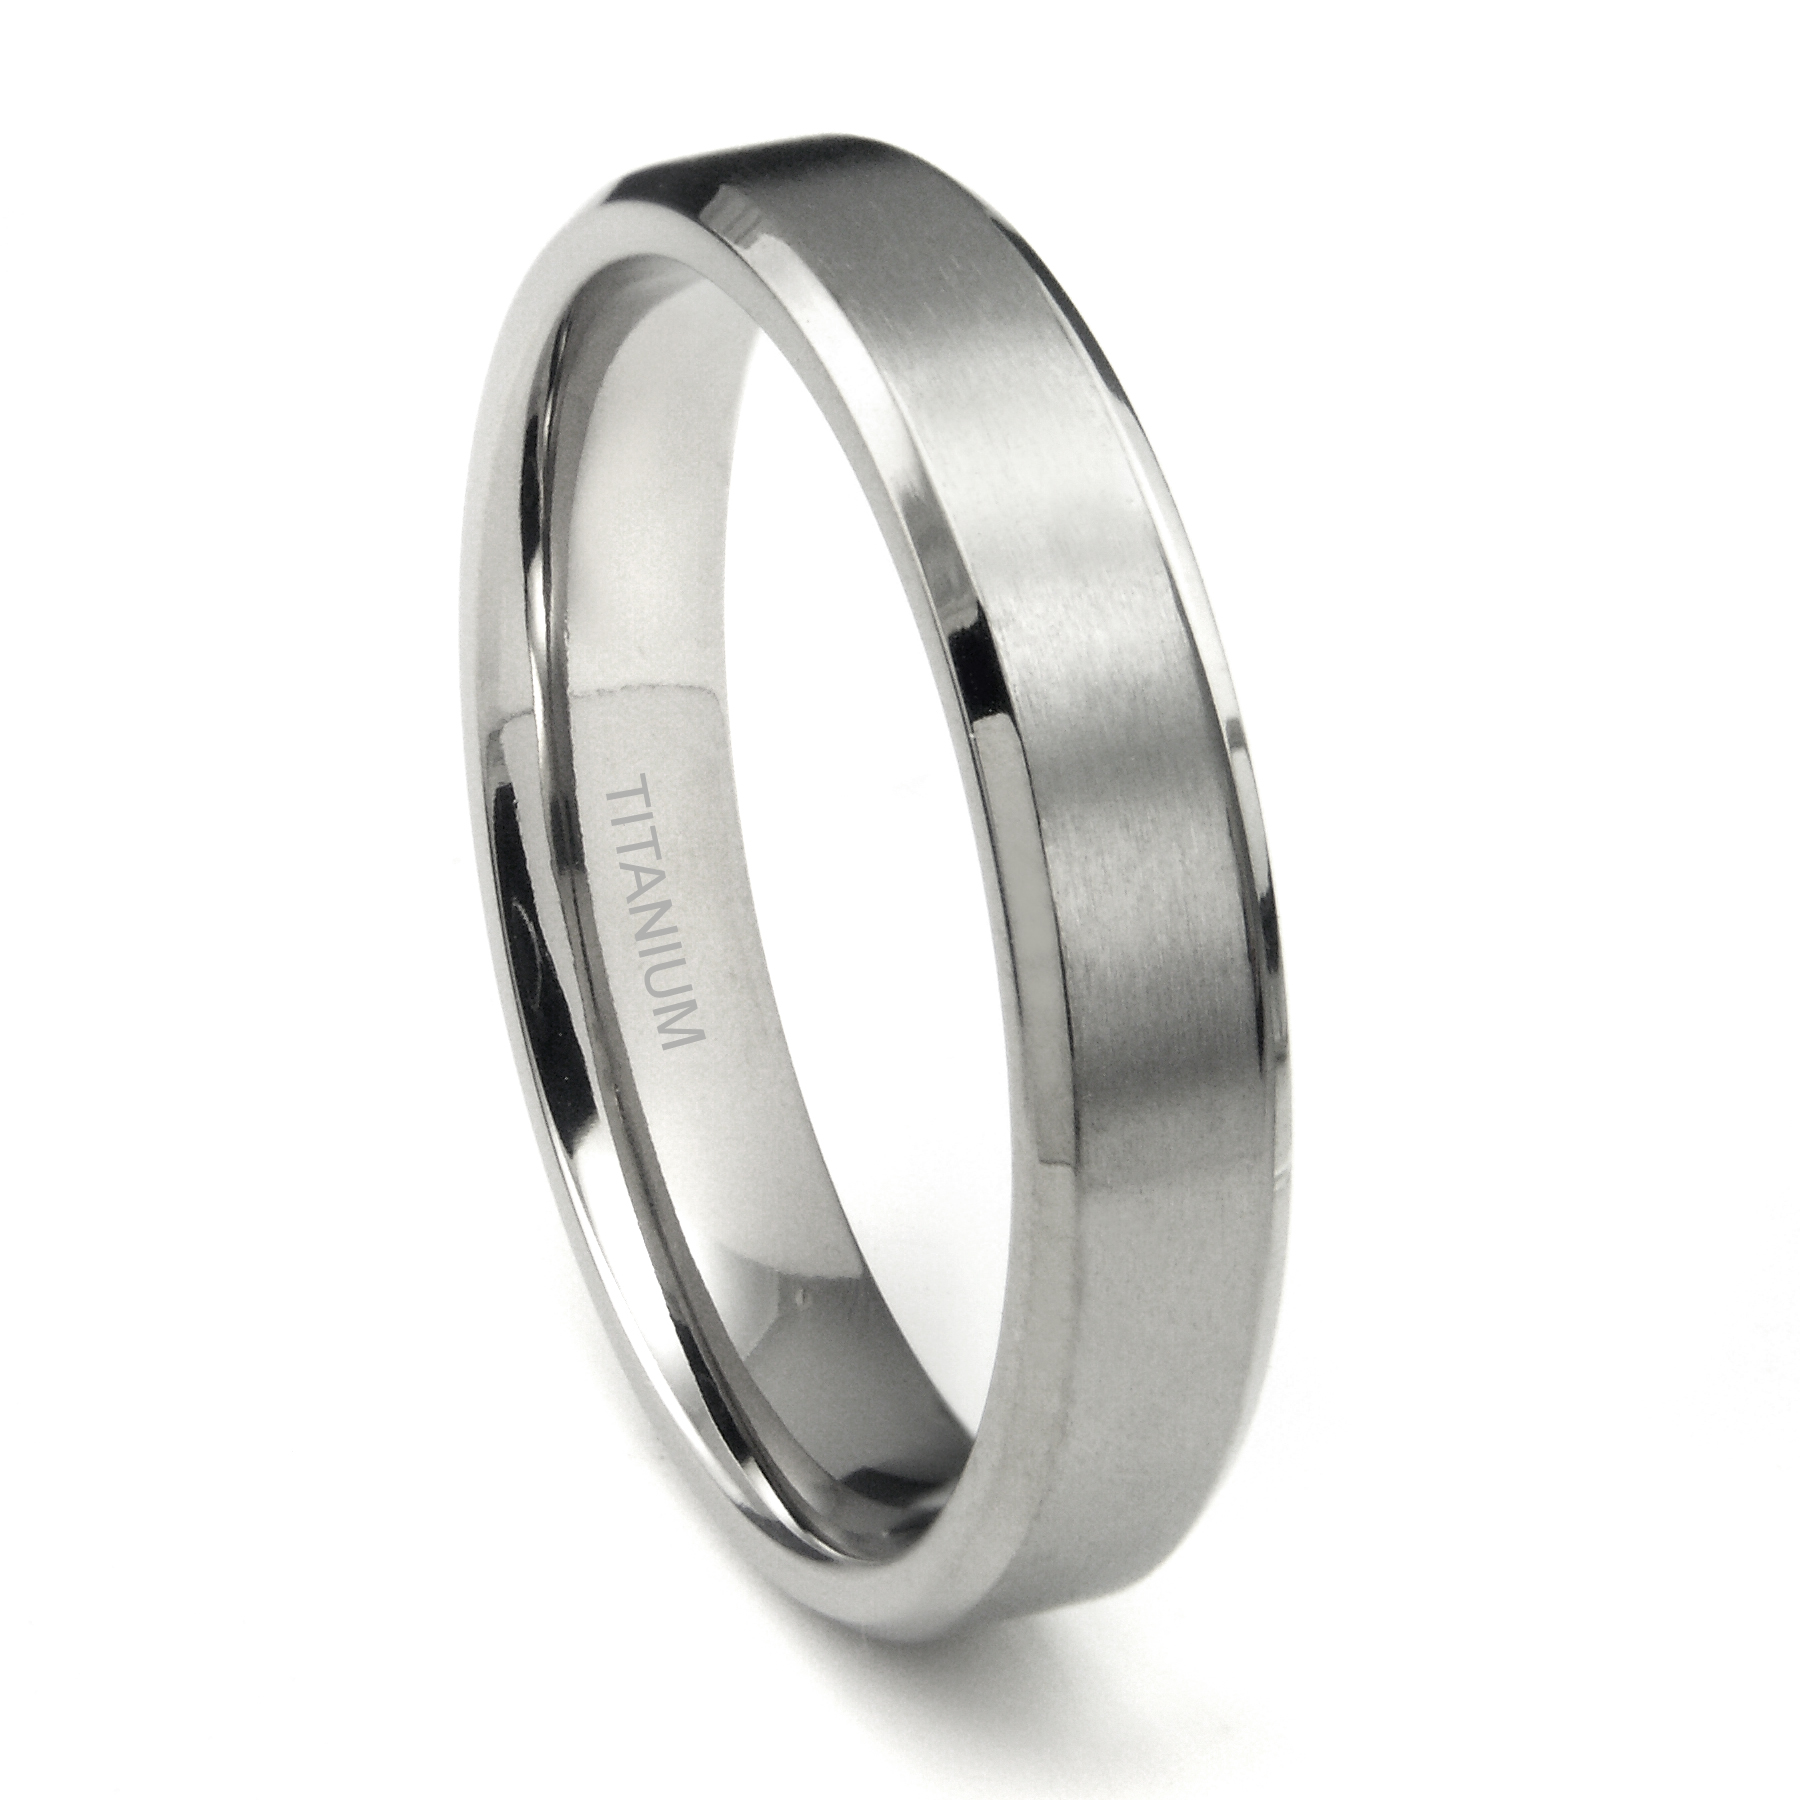 Titanium 5mm Beveled Wedding Band Ring w Brushed Center P mens titanium wedding band Home Men s Titanium Wedding Rings Loading zoom